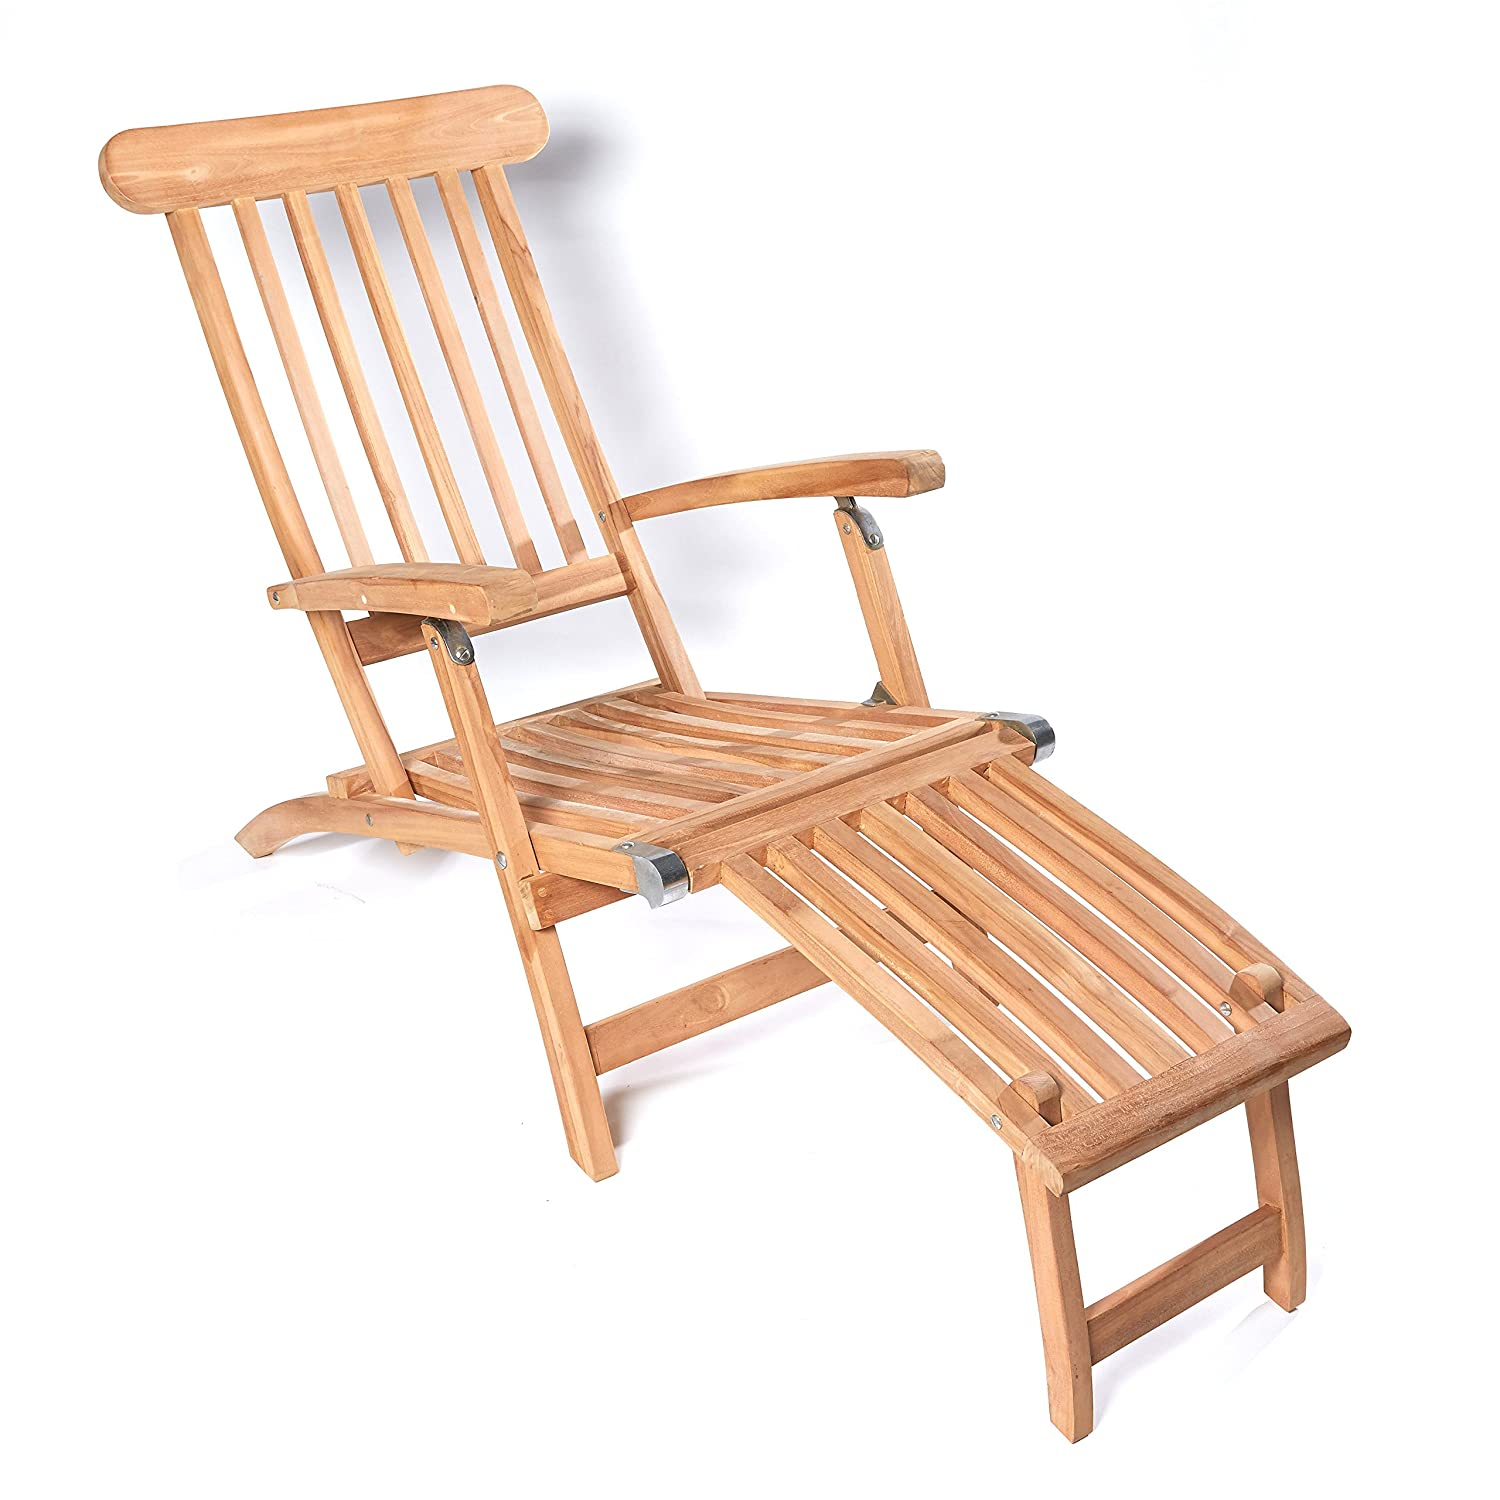 deckchair teak deckstuhl sonnenliege gartenliege liegestuhl liege gartenm bel online kaufen. Black Bedroom Furniture Sets. Home Design Ideas